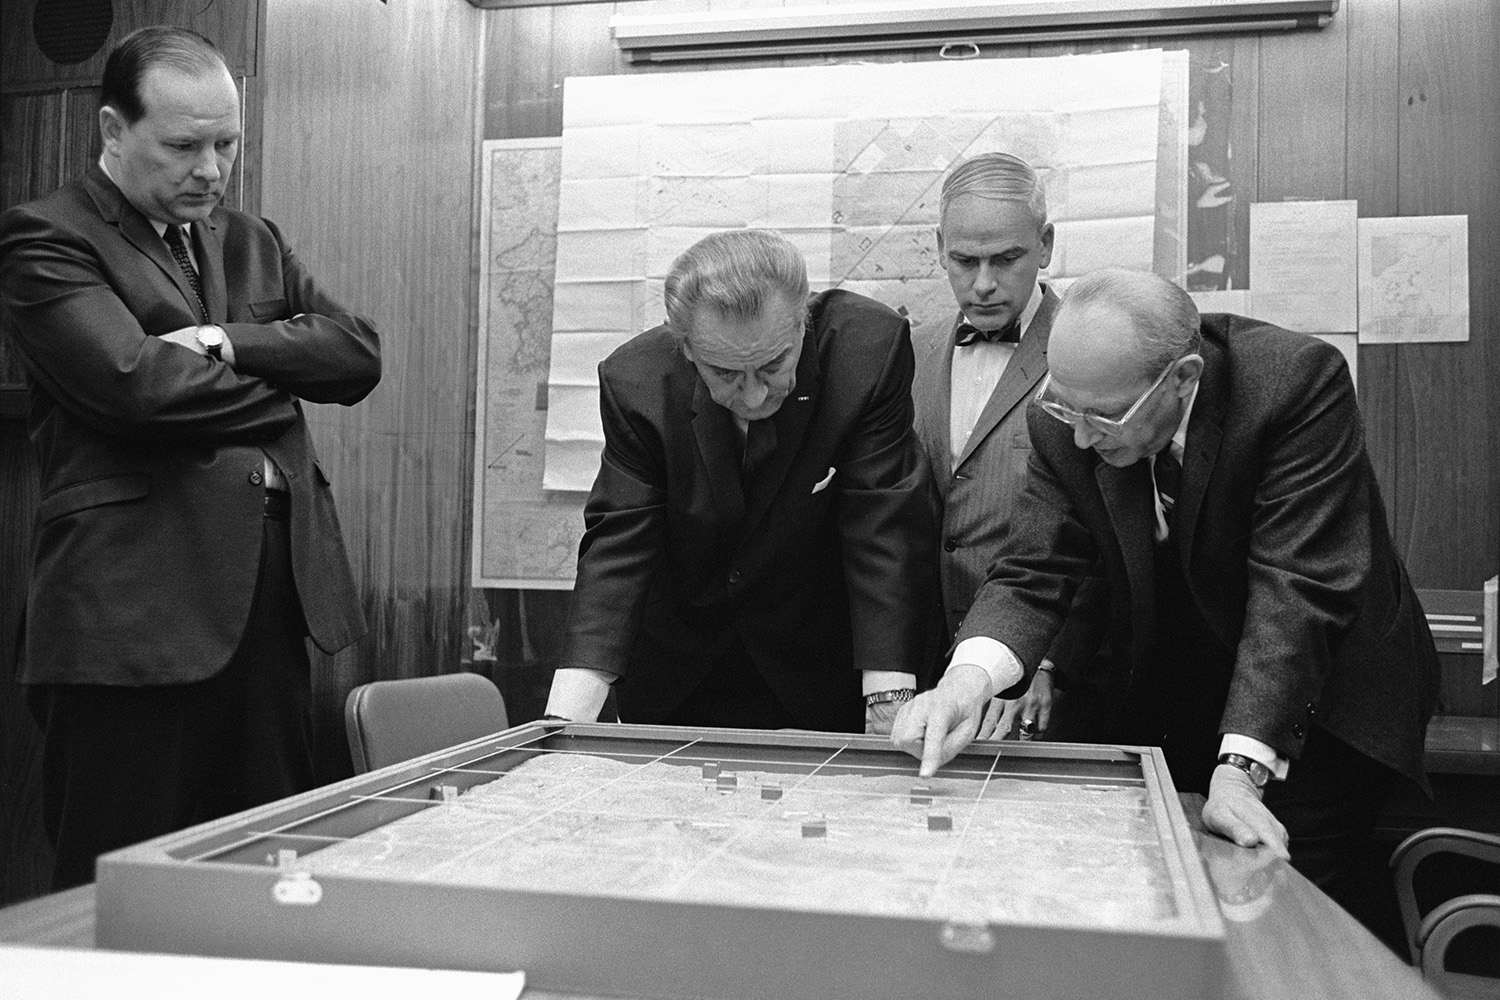 U.S. National Security Advisor Walt Rostow shows President Lyndon Johnson options for a military attack on a site in Vietnam during the Vietnam War from the Situation Room at the White House in 1968.